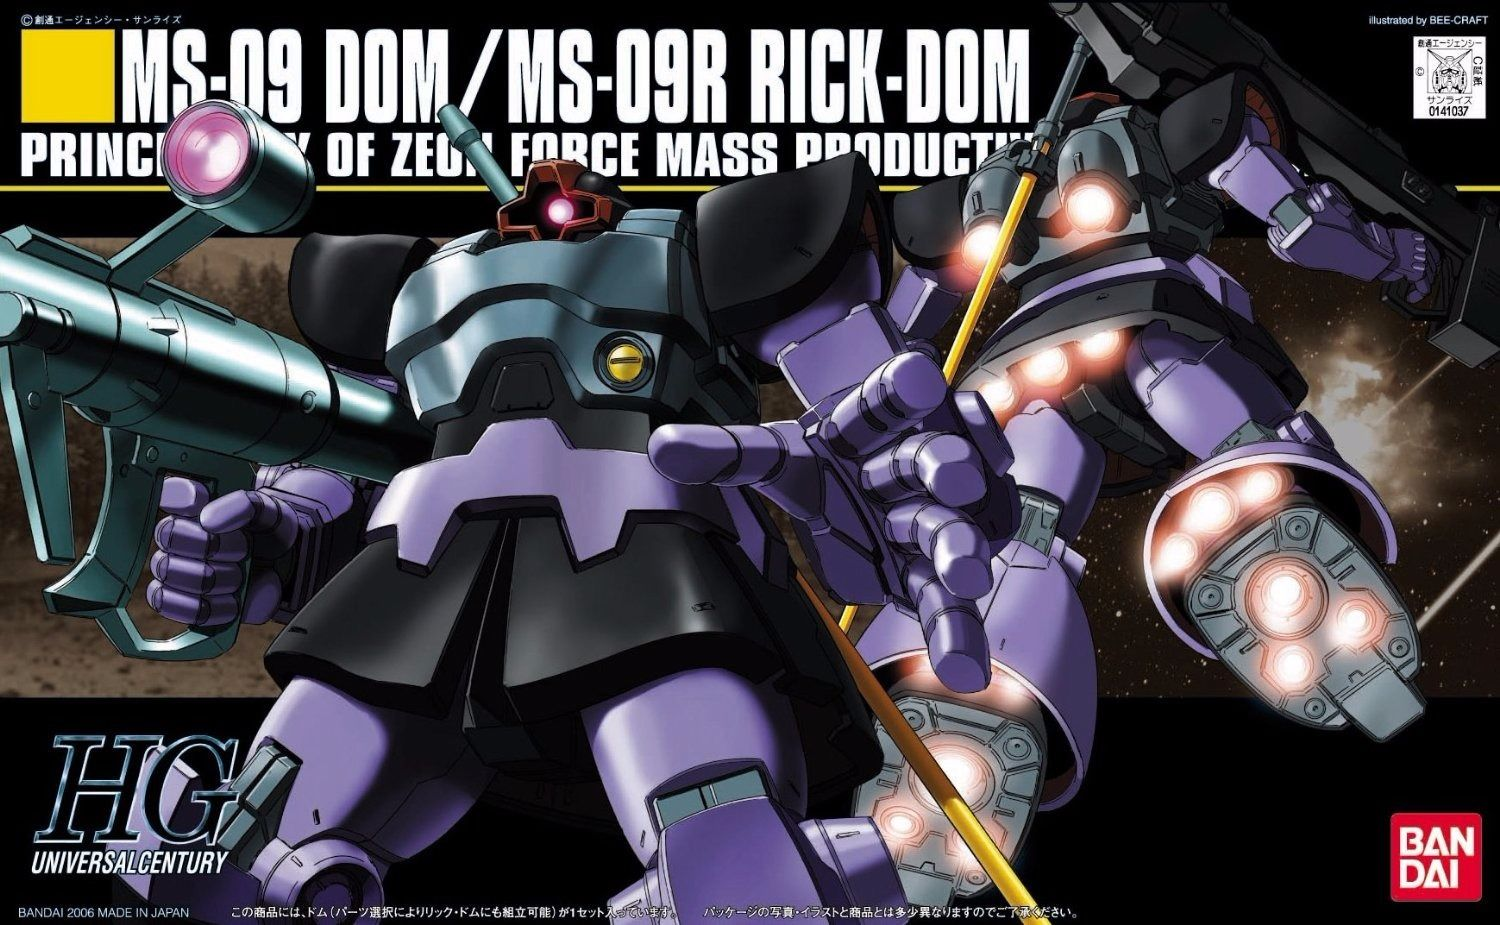 BANDAI HGUC 1/144 MS-09 DOM / MS-09R RICK DOM Plastic Model Kit Gundam Japan_1